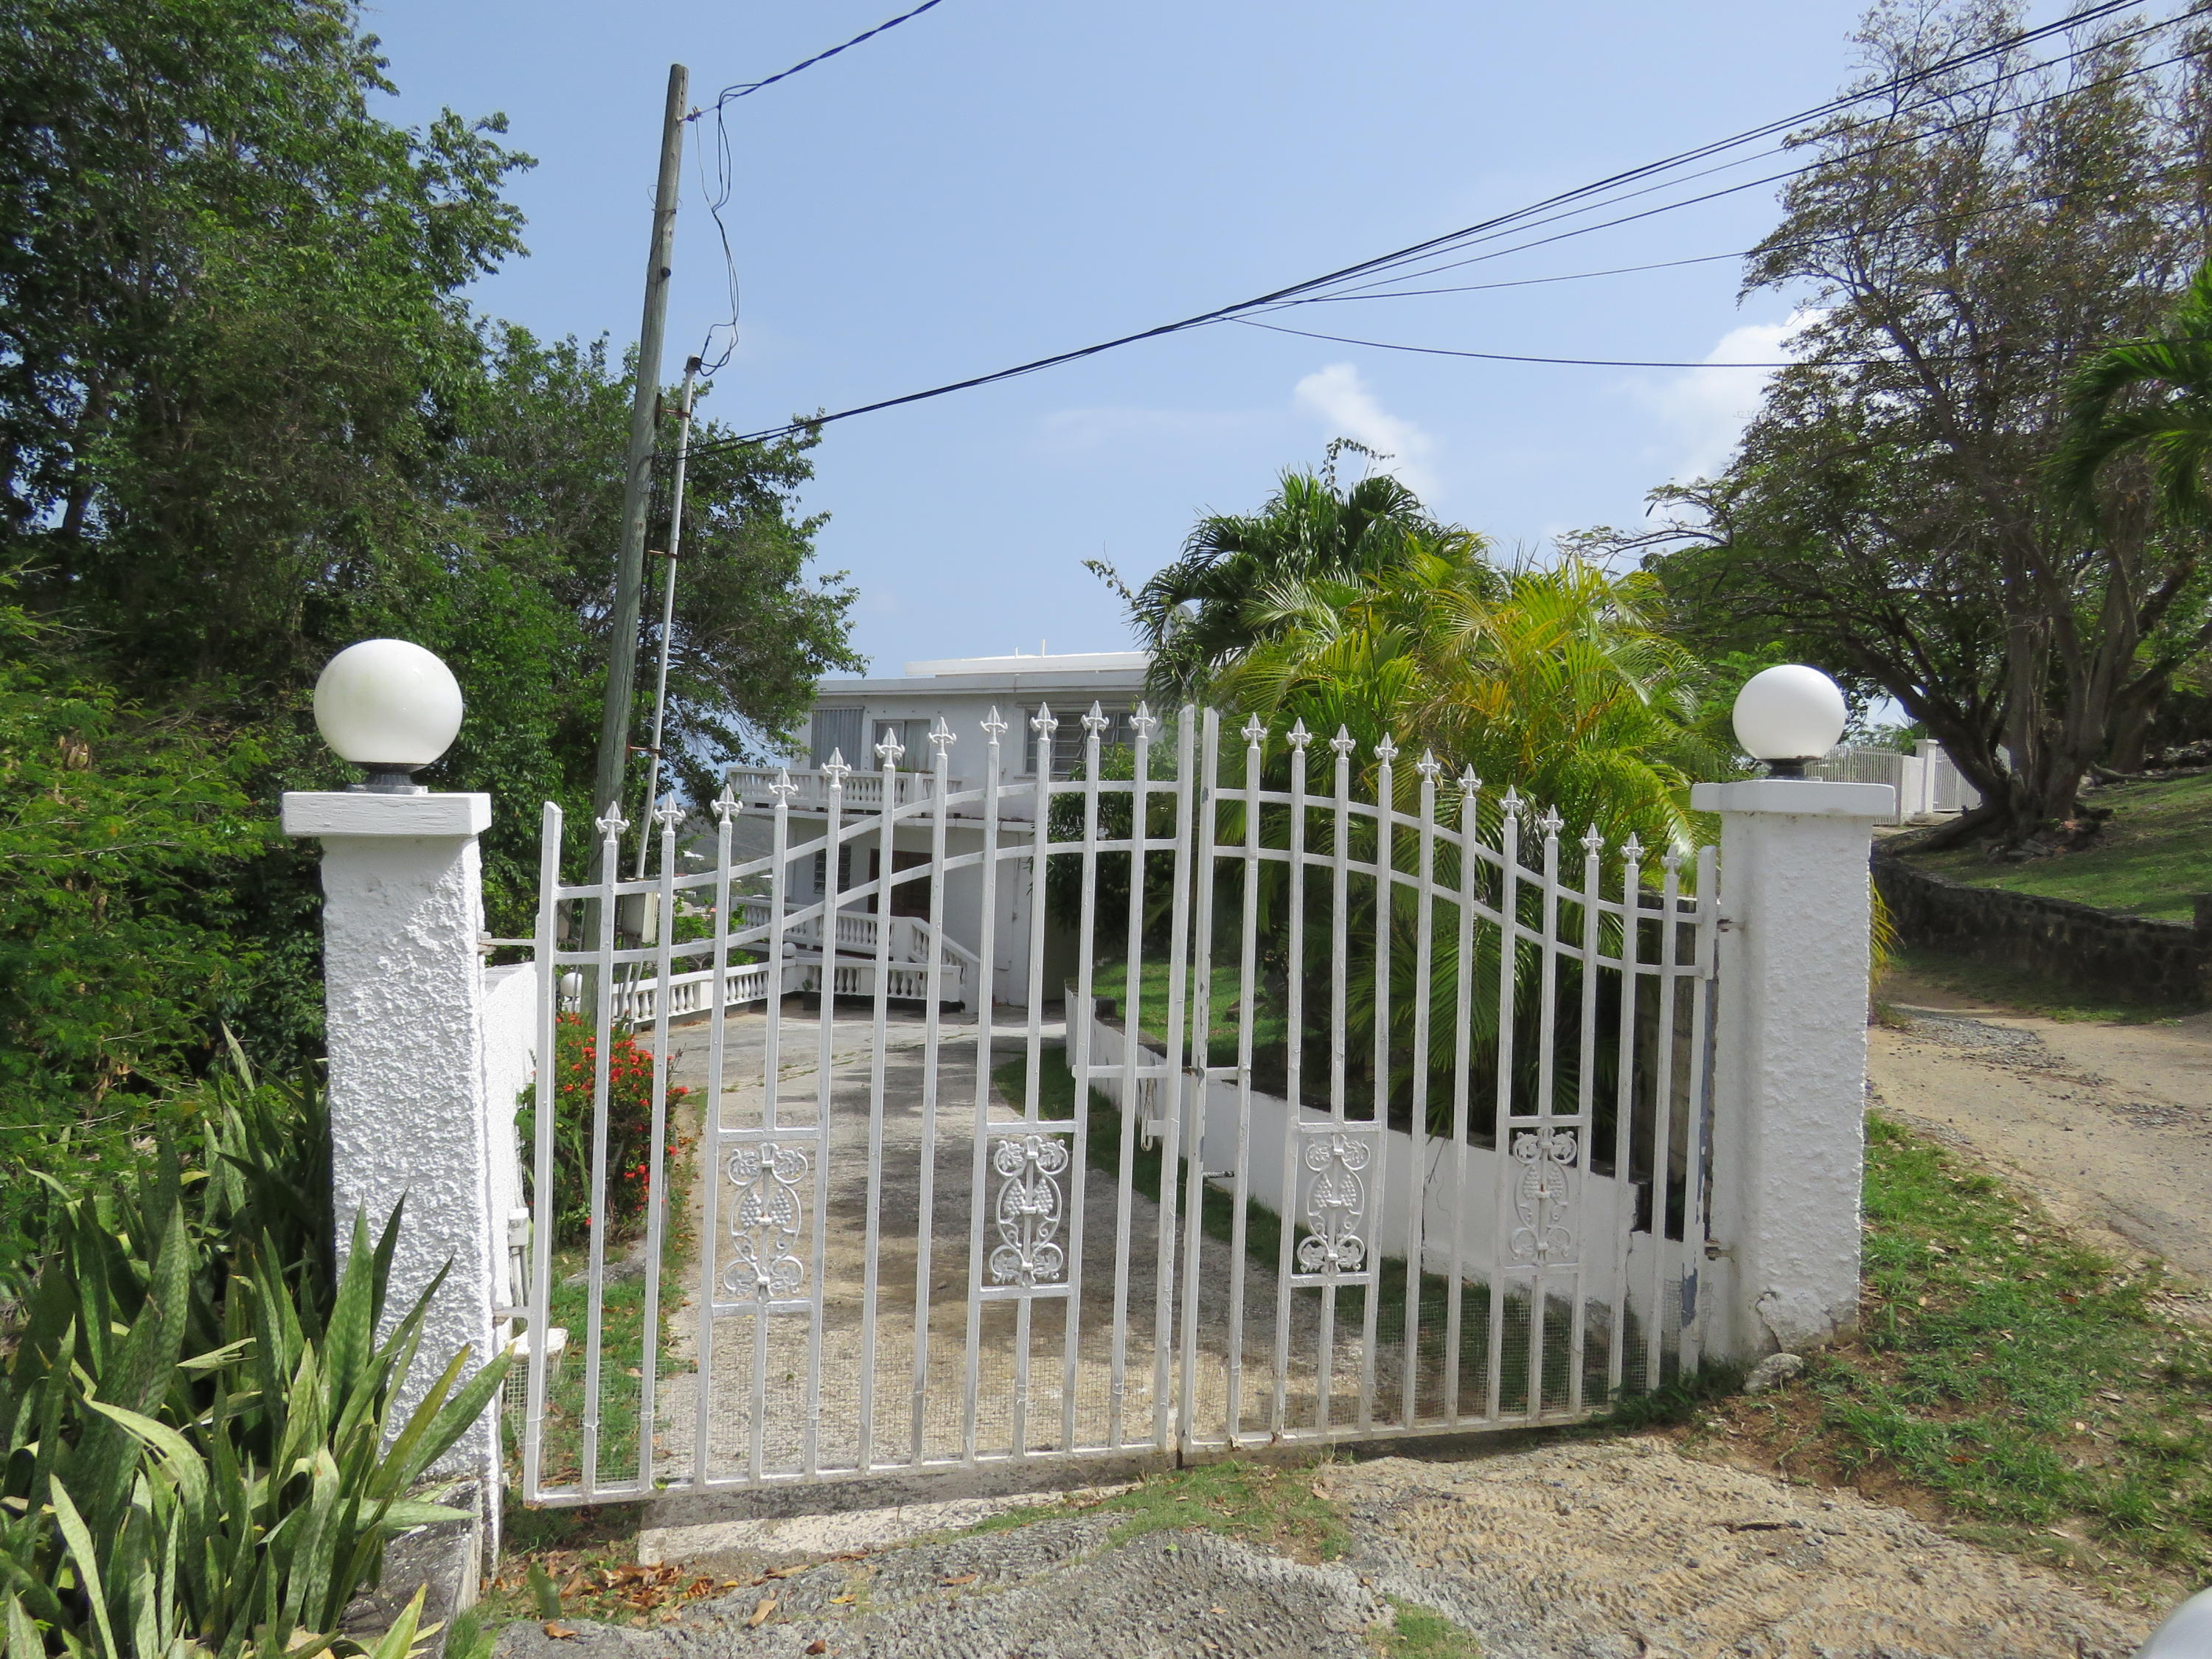 Apartment gate